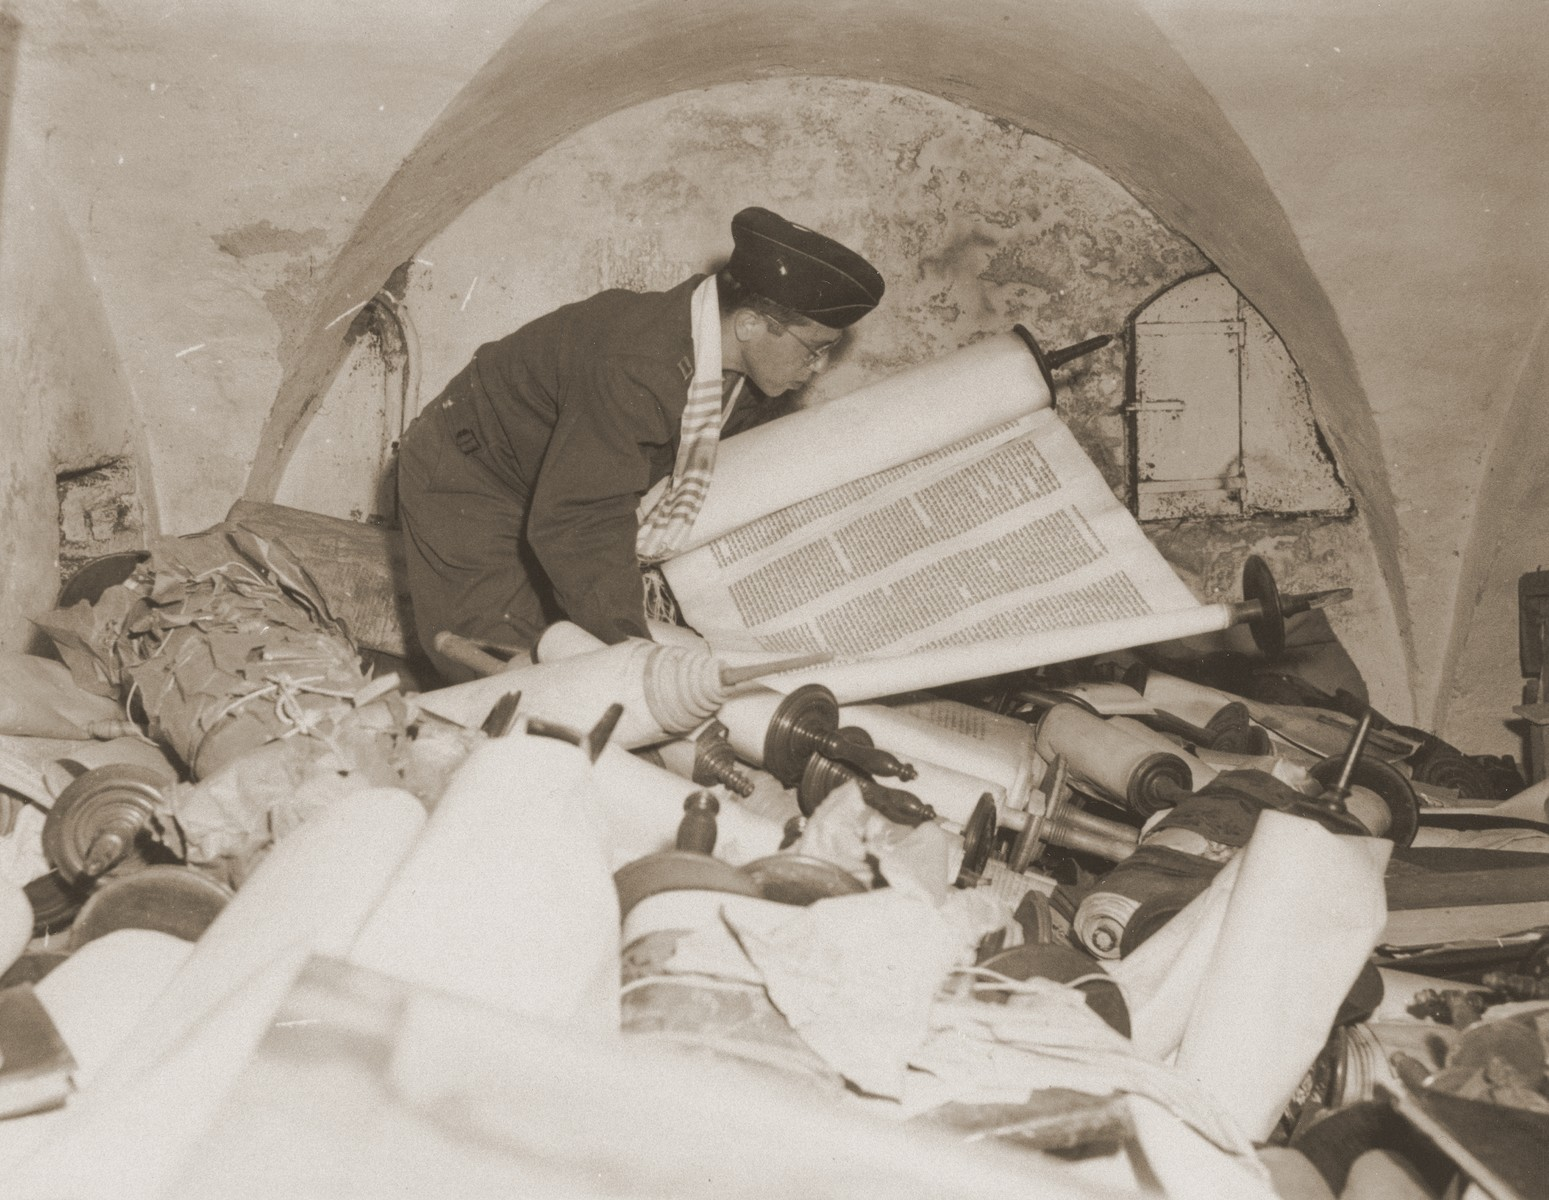 Chaplain Samuel Blinder examines one of the Torah scrolls stolen by the Einsatzstab Rosenberg and stored in the basement of the Institut fuer Juedische Erforschung [Institute for Research into the Jewish Question] in Frankfurt am Main.  The Einsatzstab Rosenberg, established by Reichsleiter Alfred Rosenberg in 1941, travelled to newly occupied countries and confiscated materials from libraries, archives, and private homes.  In this manner, the Institut fuer Juedische Erforschung quickly amassed a library of over 40,000 books.